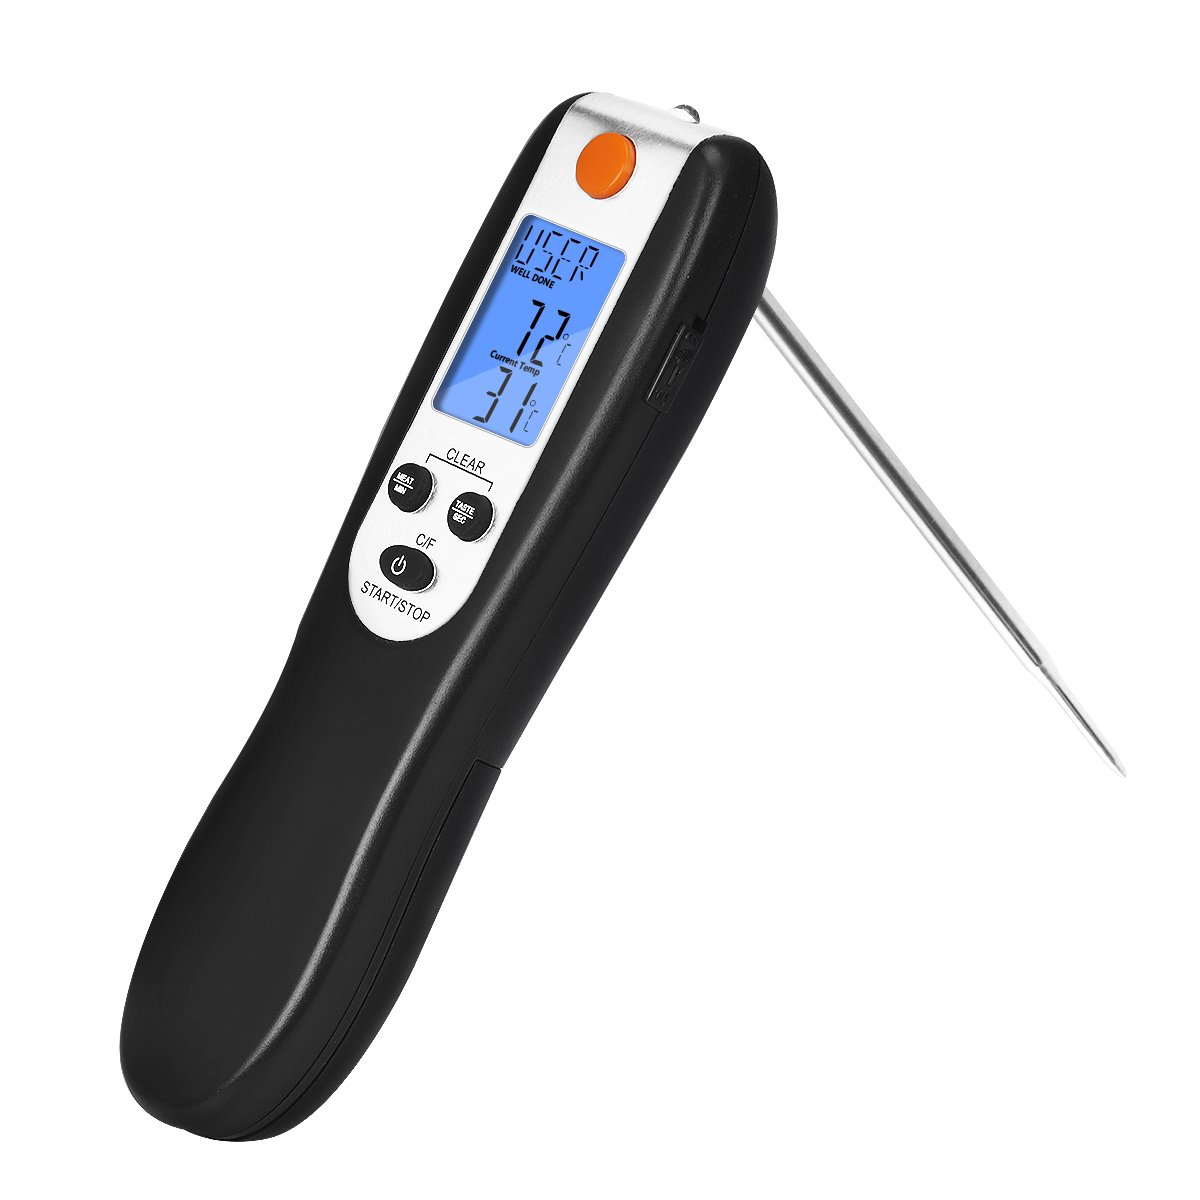 NEXT-SHINE Meat Thermometer Digital Instant Read Internal Probe Cooking Thermometer with Collapsible and Temperature Control Timing for Food/Grill/Fry/Barbecue/Candy, Black